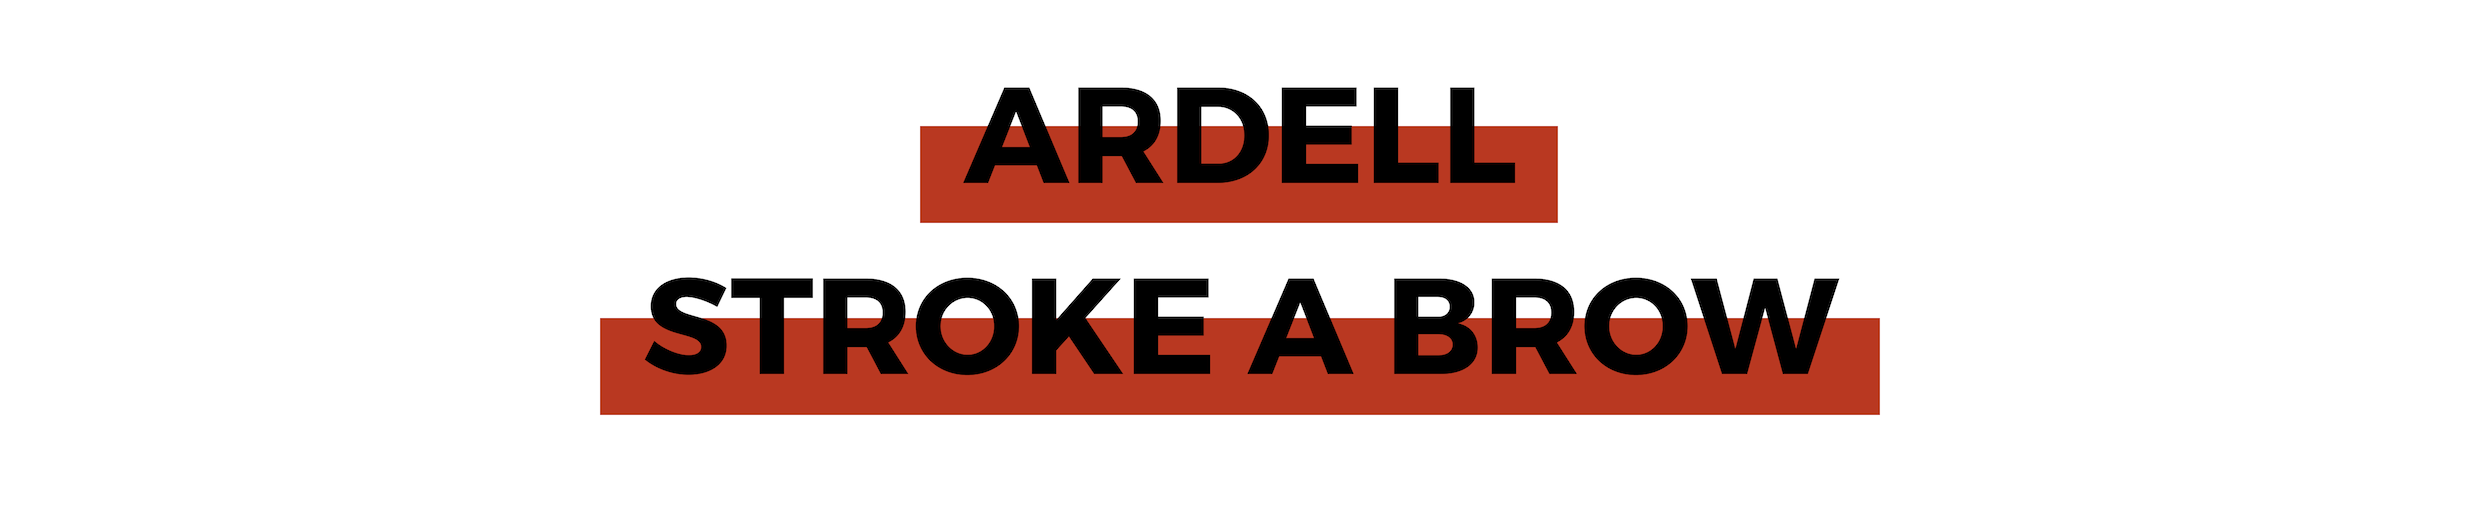 ARDELL STROKE A BROW.png